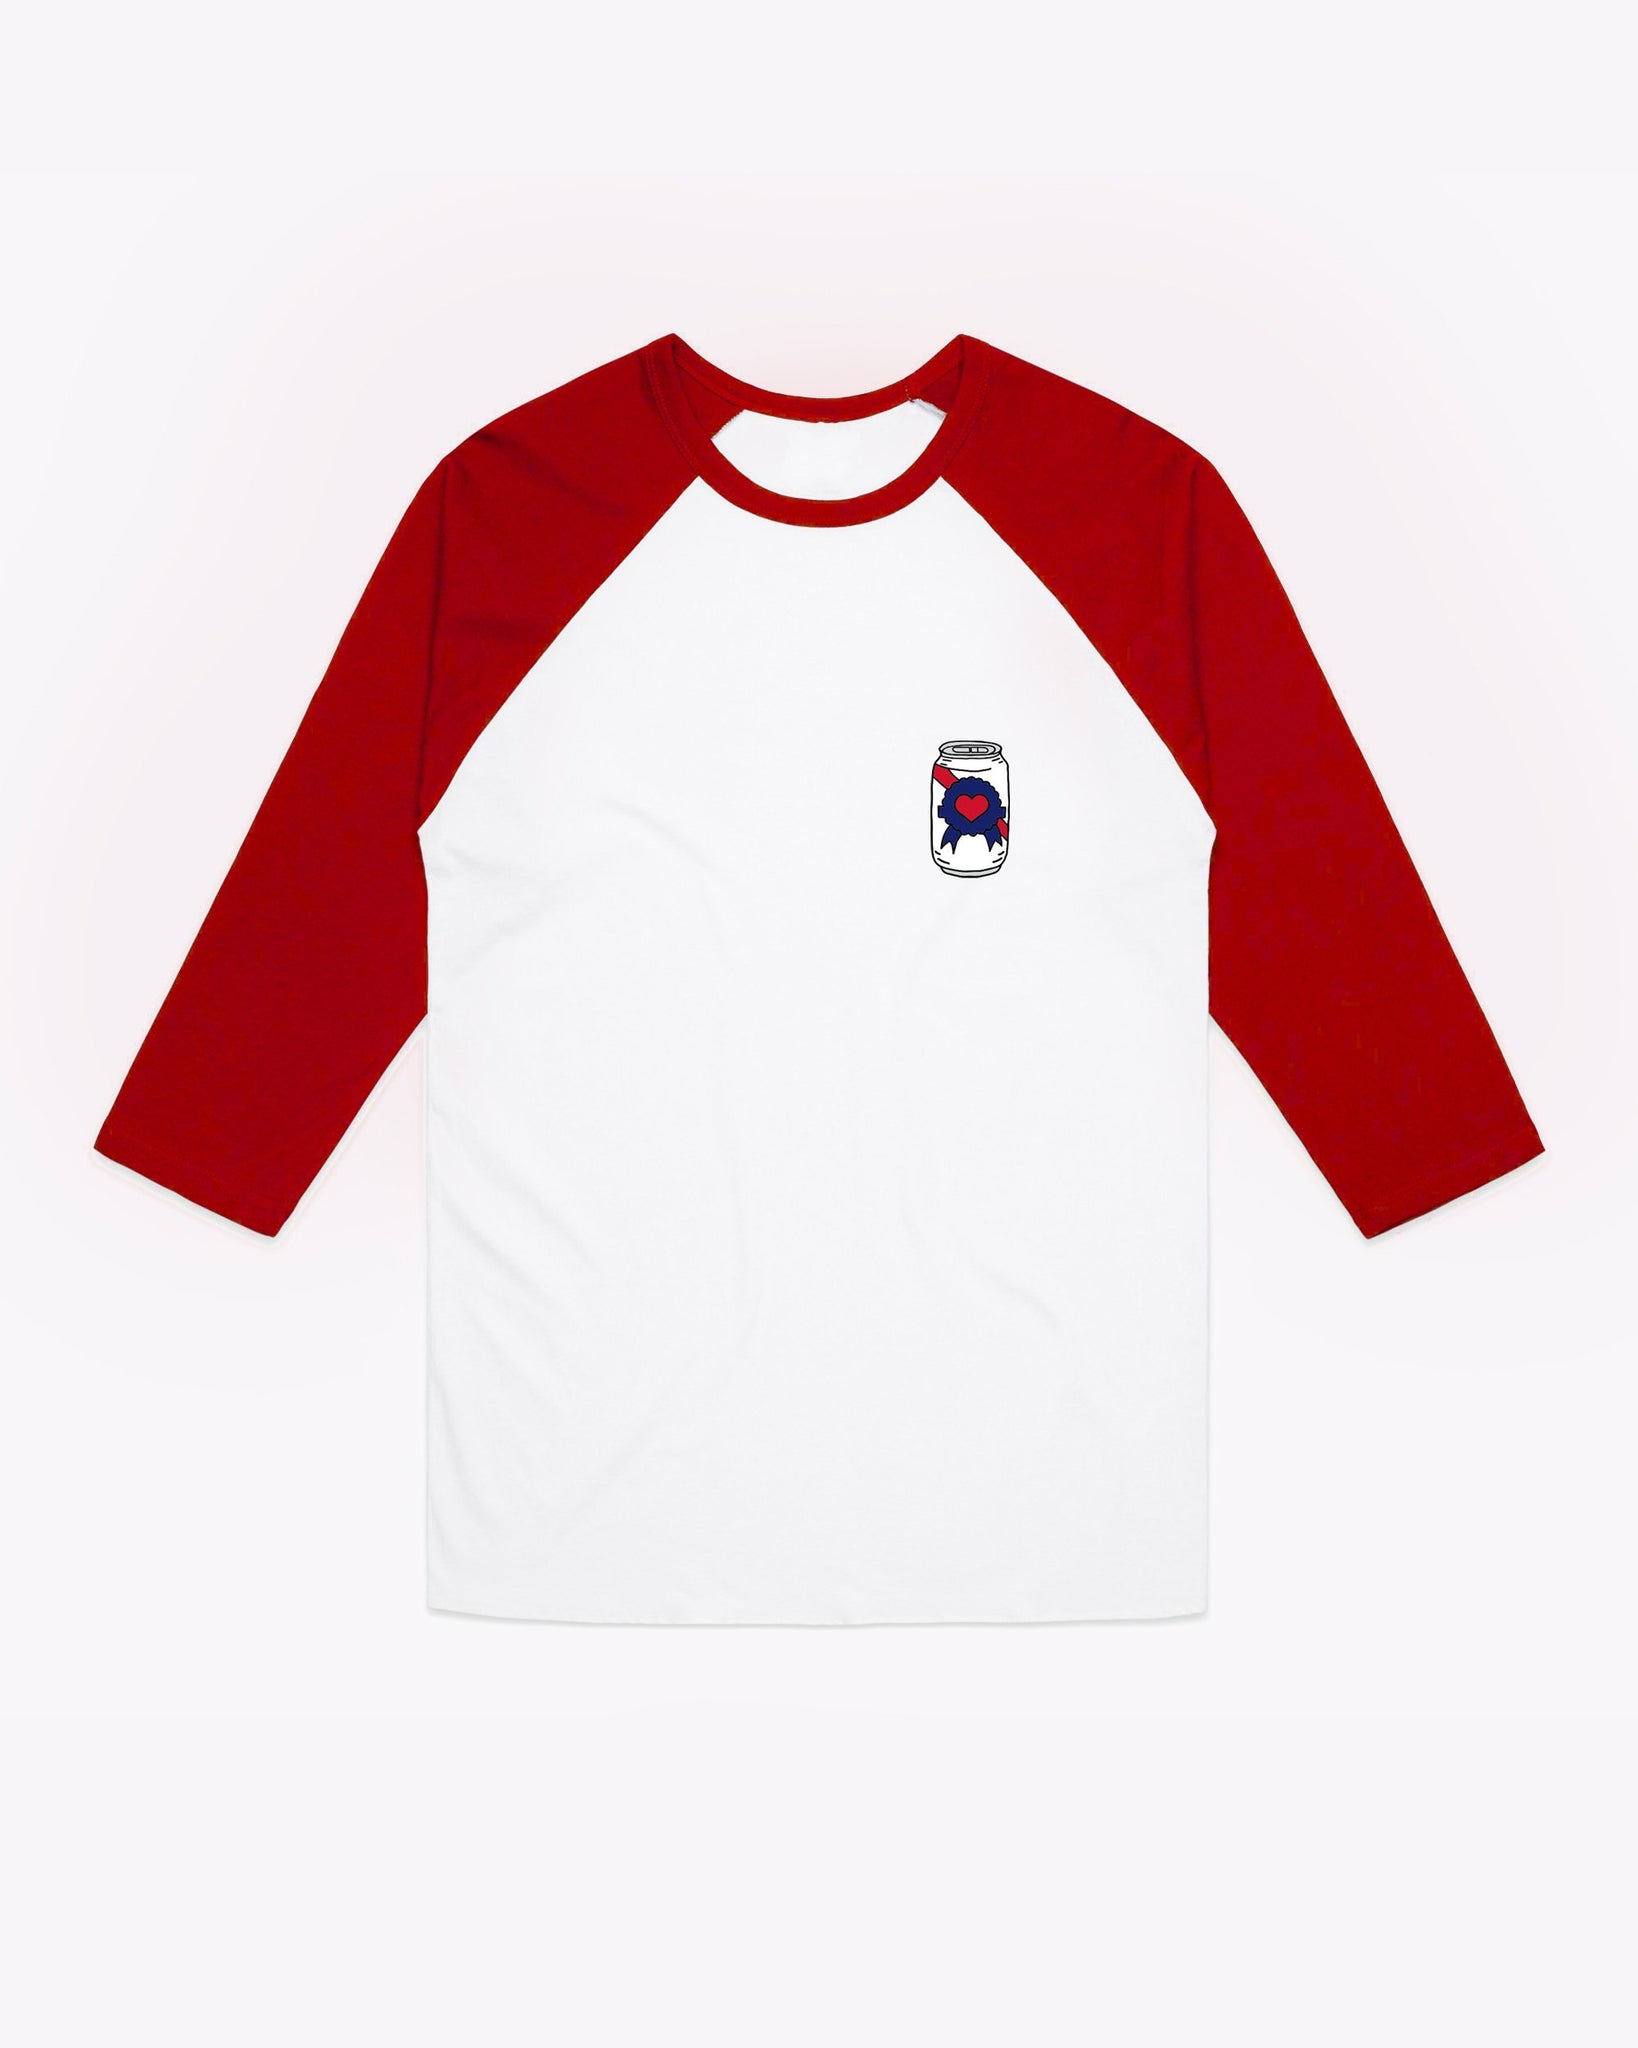 Drinking Buddy ¾ Raglan – I'm My Own Drinking Buddy